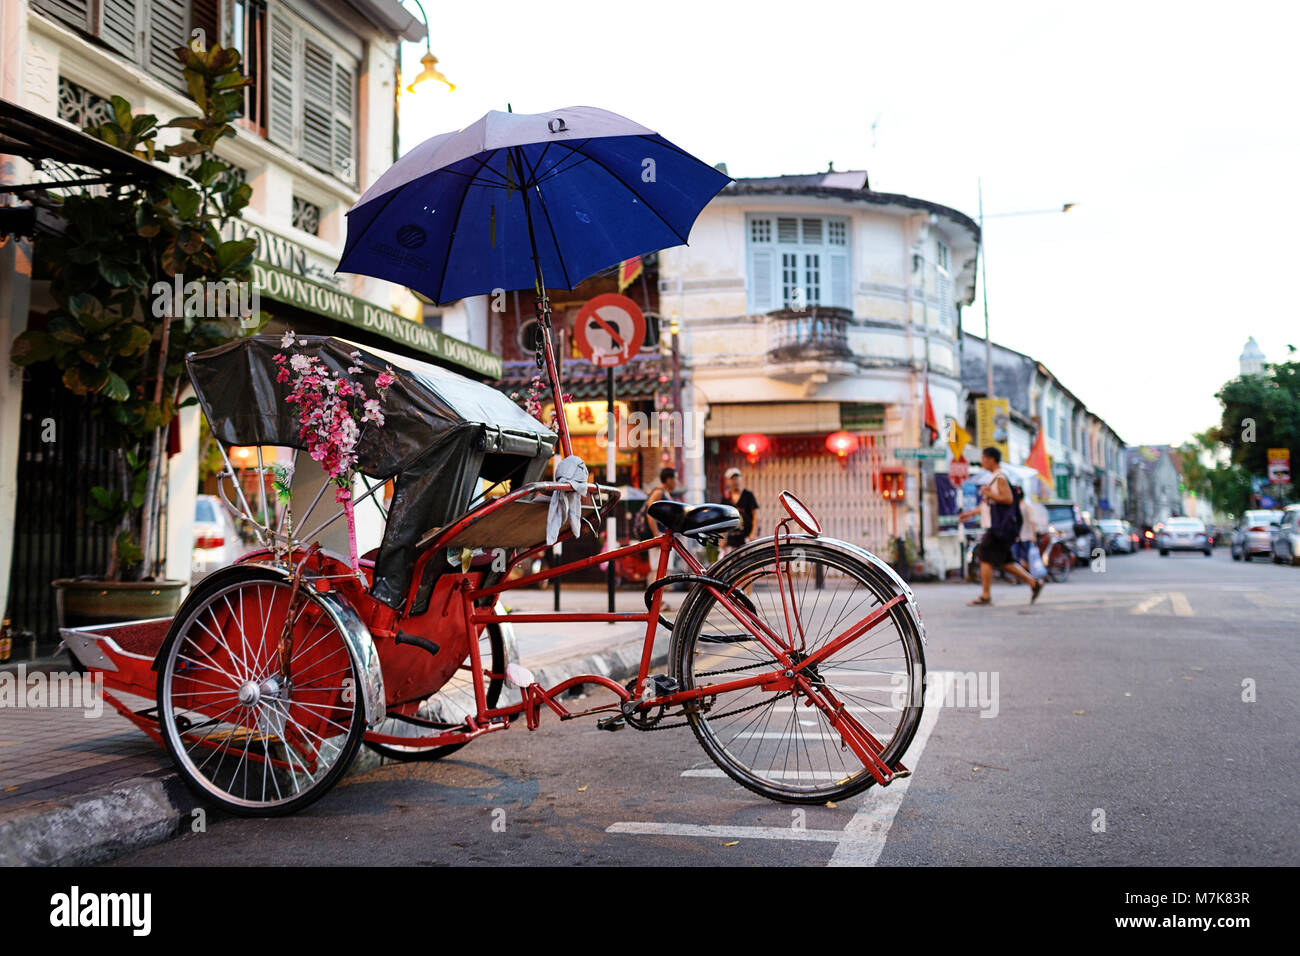 Rikshaw and traditional Chinese shop houses in the UNESCO World Heritage zone of Georgetown in Penang, Malaysia Stock Photo